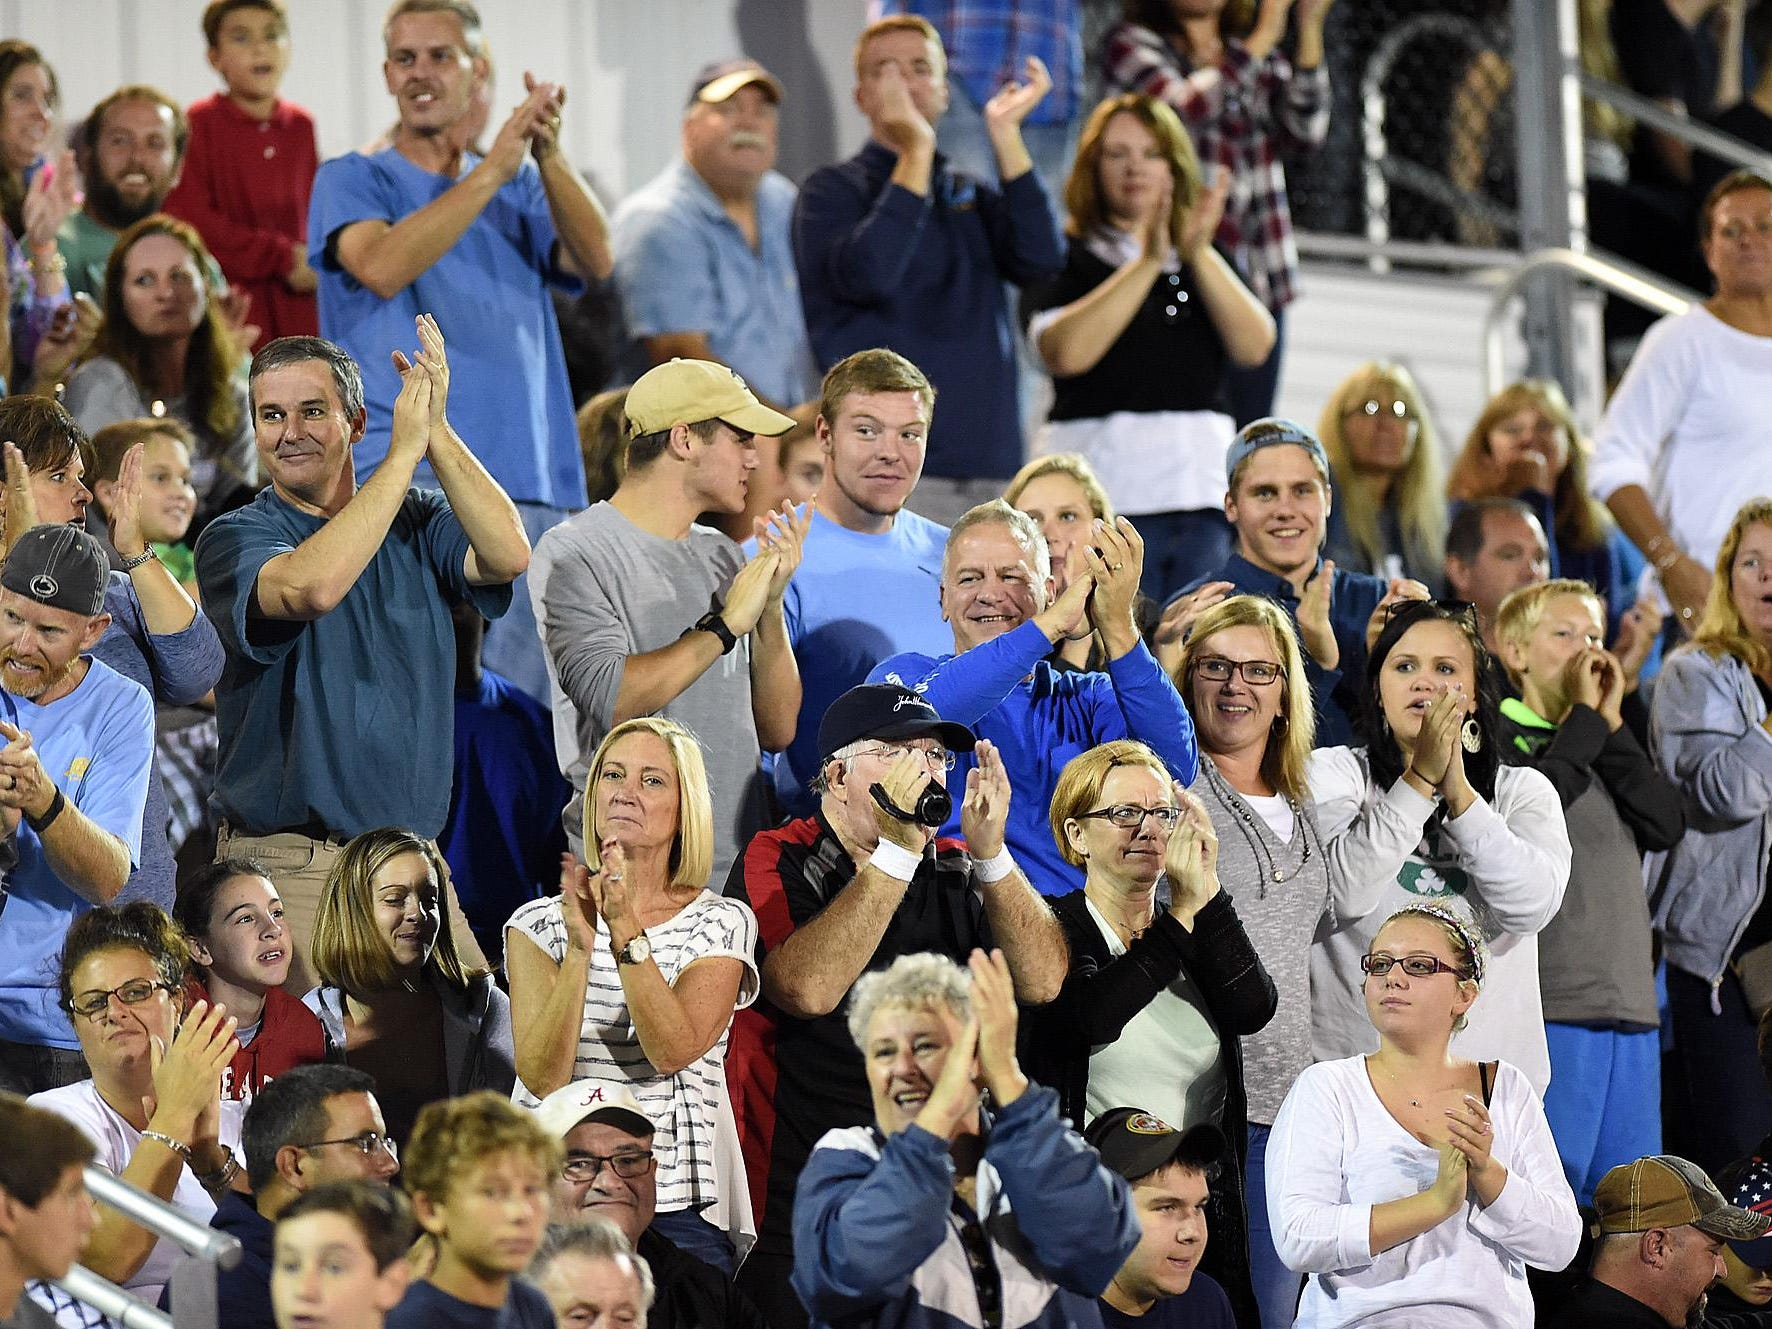 Fans react as Cape scores during their loss against Oakdale. Fans react as Cape scores as Cape Henlopen High School Varsity Football (yellow) opened their home season with a loss to Oakdale HS from Fredrick, Md 12-48 at Legends Field at the school near Lewes on Friday September 18th.